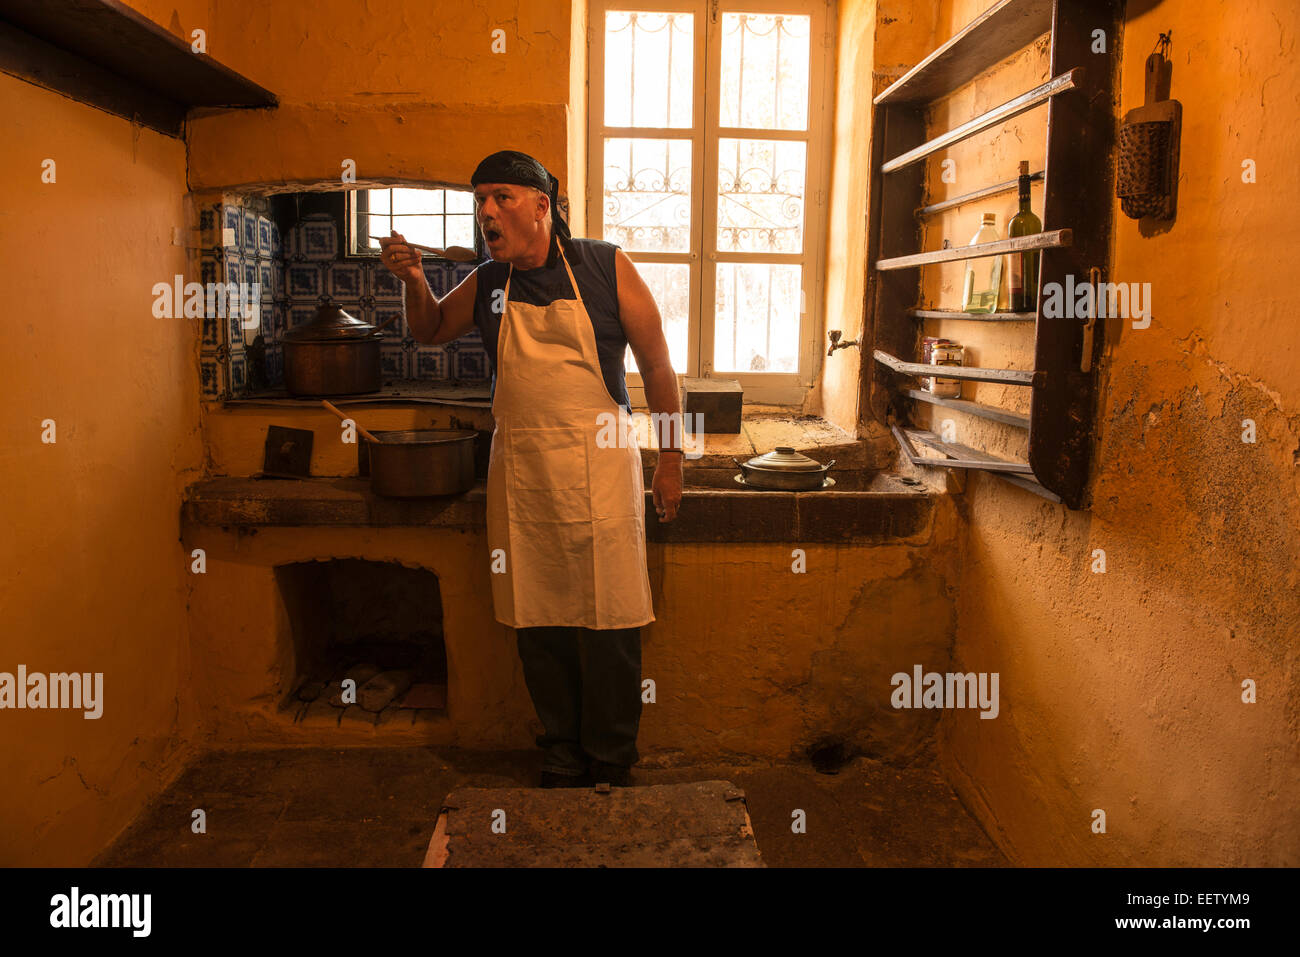 Male cook tasting soup in an old-fashioned kitchen Stock Photo